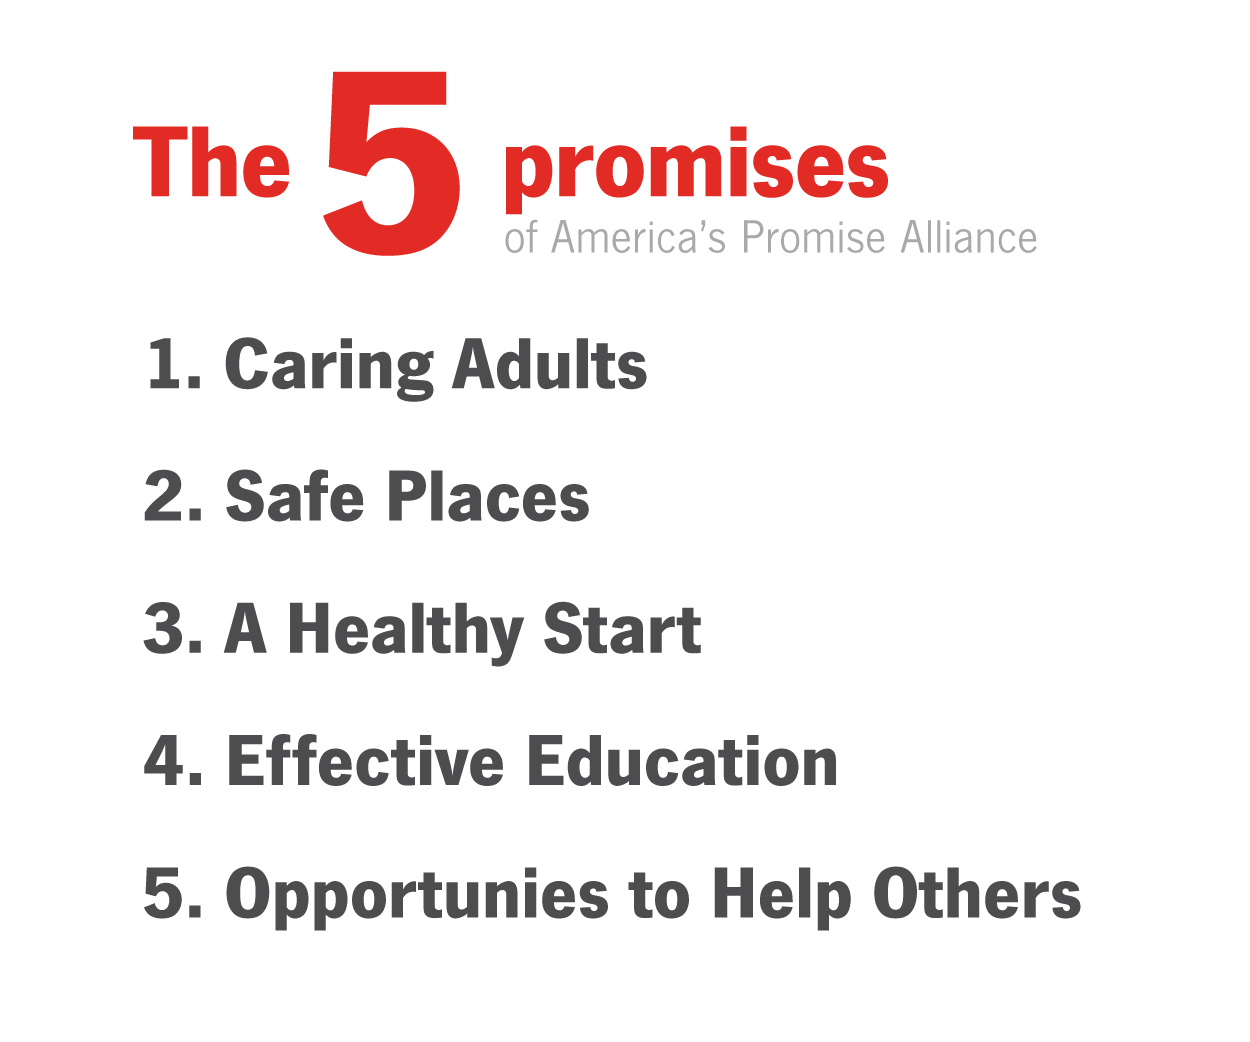 The 5 promises of America's Promise; Promise No. 1 - Caring Adults, Promise No.2 - Safe Places, Promise No.3 - A healthy start, Promise No. 4 - Effective Education, Promise No. 5 - Opportunties to help others.